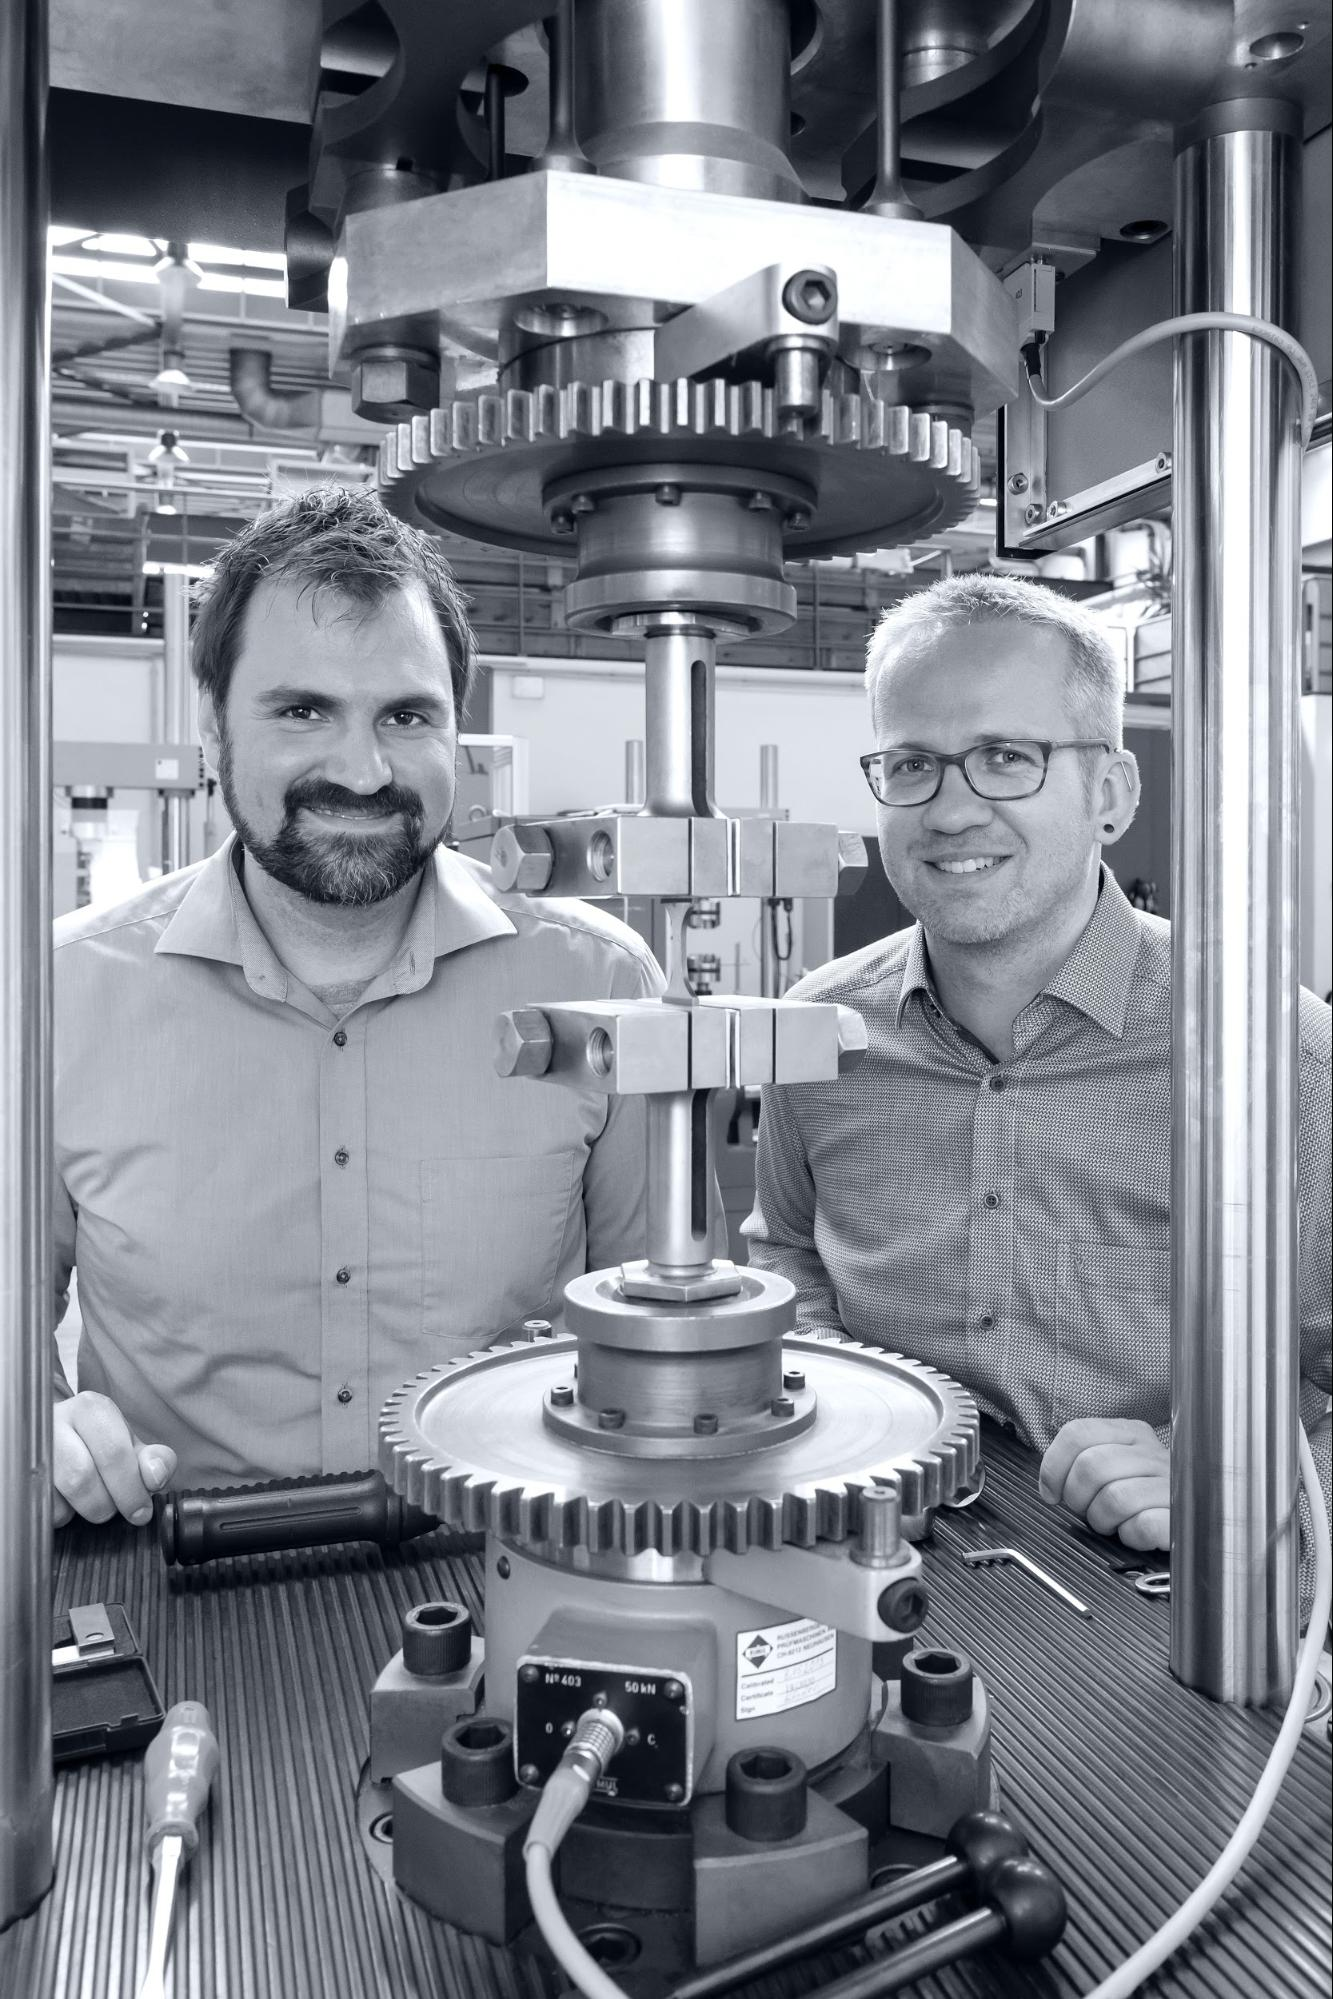 Dr. Nils Ellendt and Sebastian Huhn stand next to the fatigue testing machine